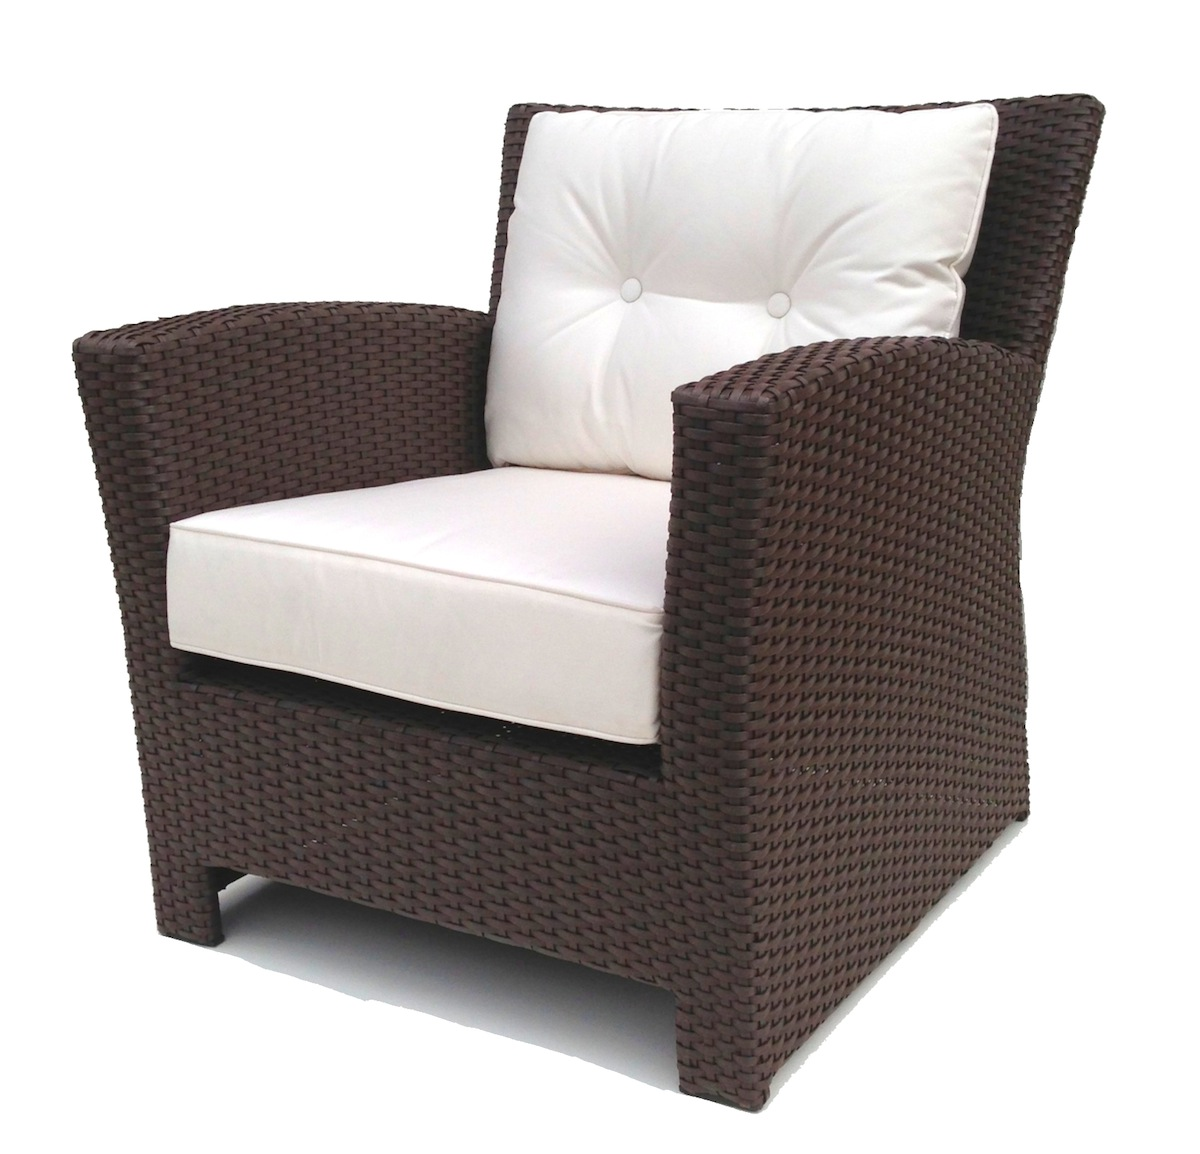 Rattan Chairs Outdoor Wicker Club Chair